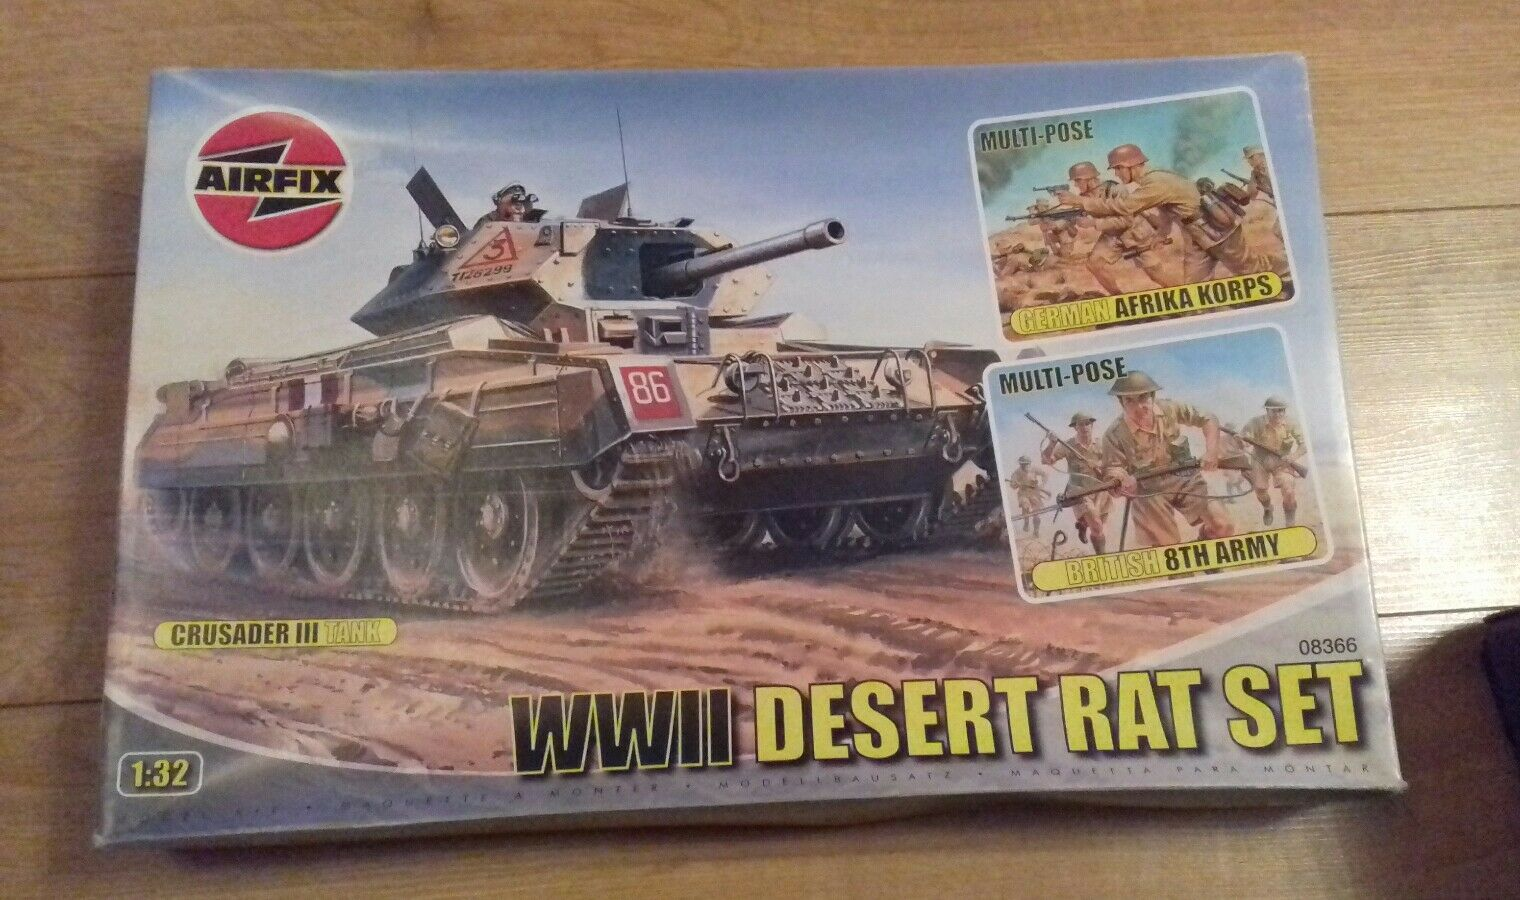 Airfix WWII DESERT RAT SET Afrika Korps and British 8th Army